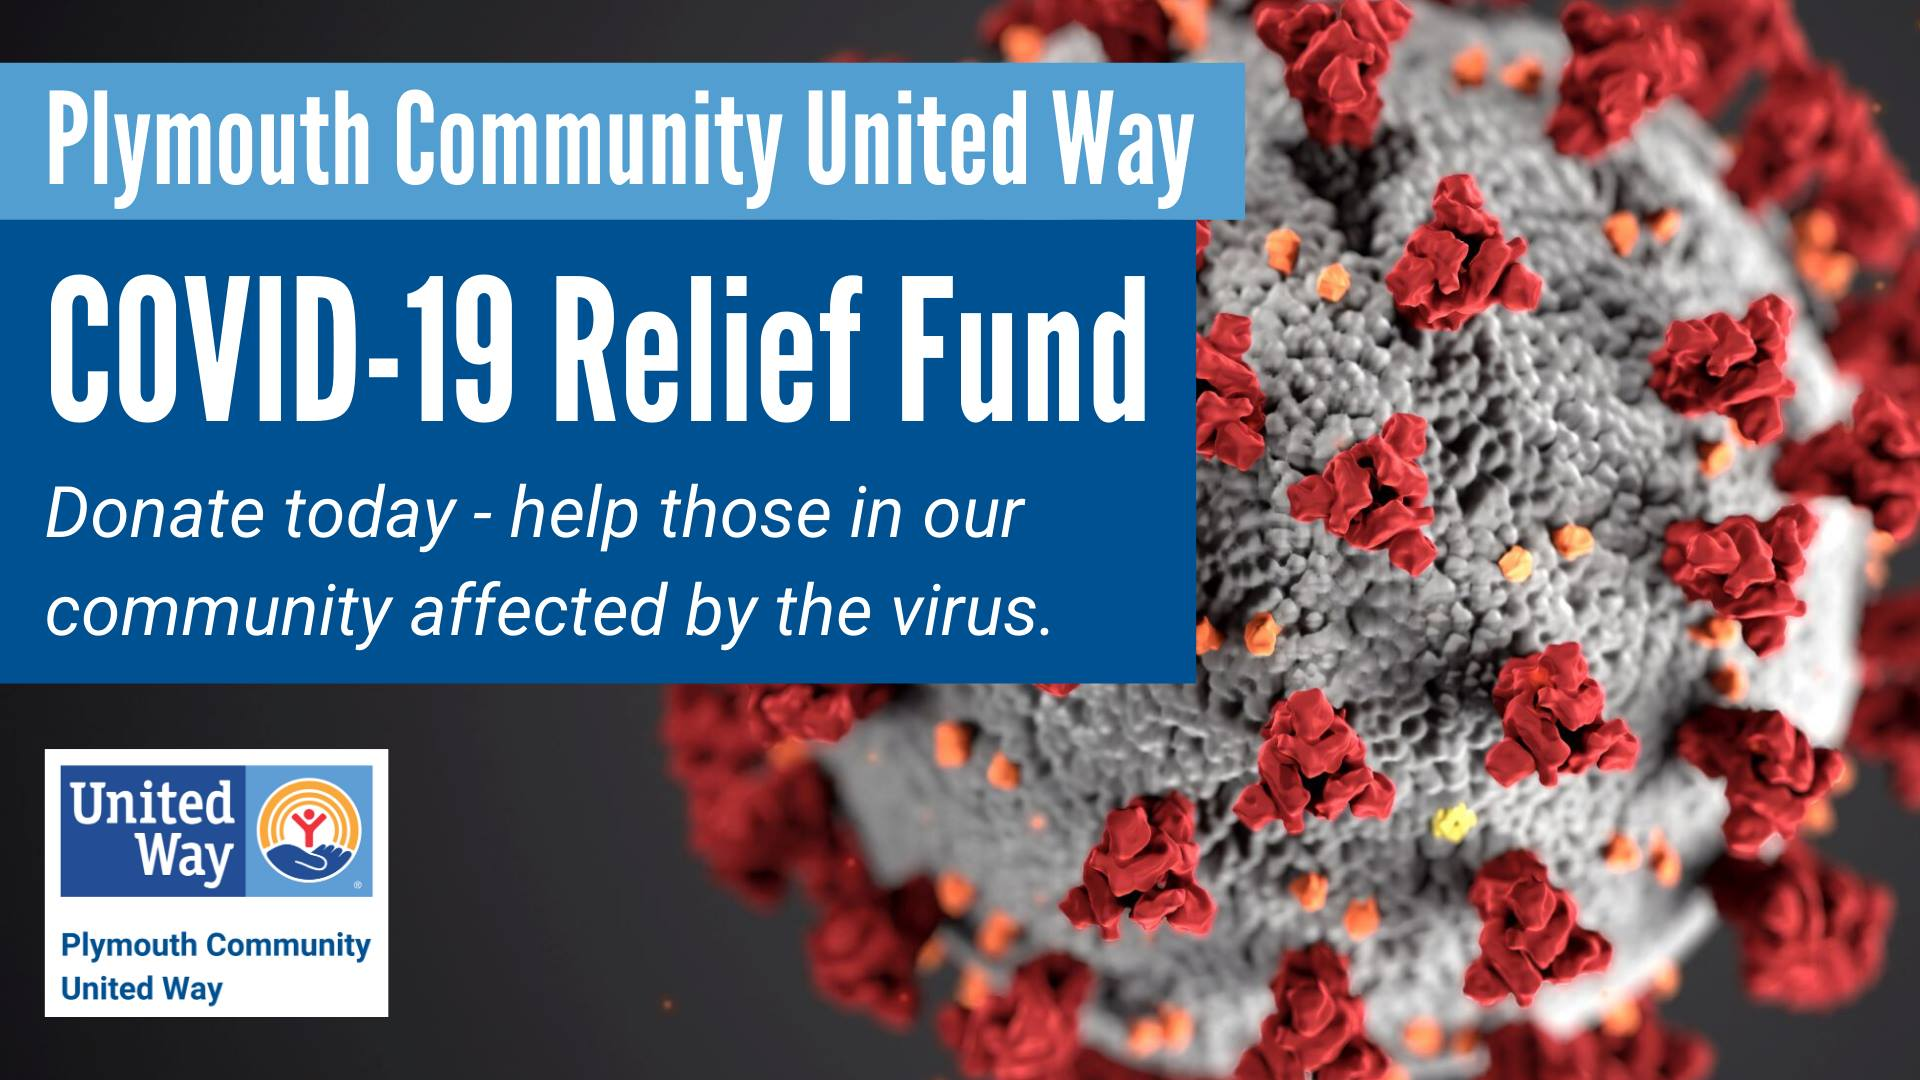 PCUW relief fund